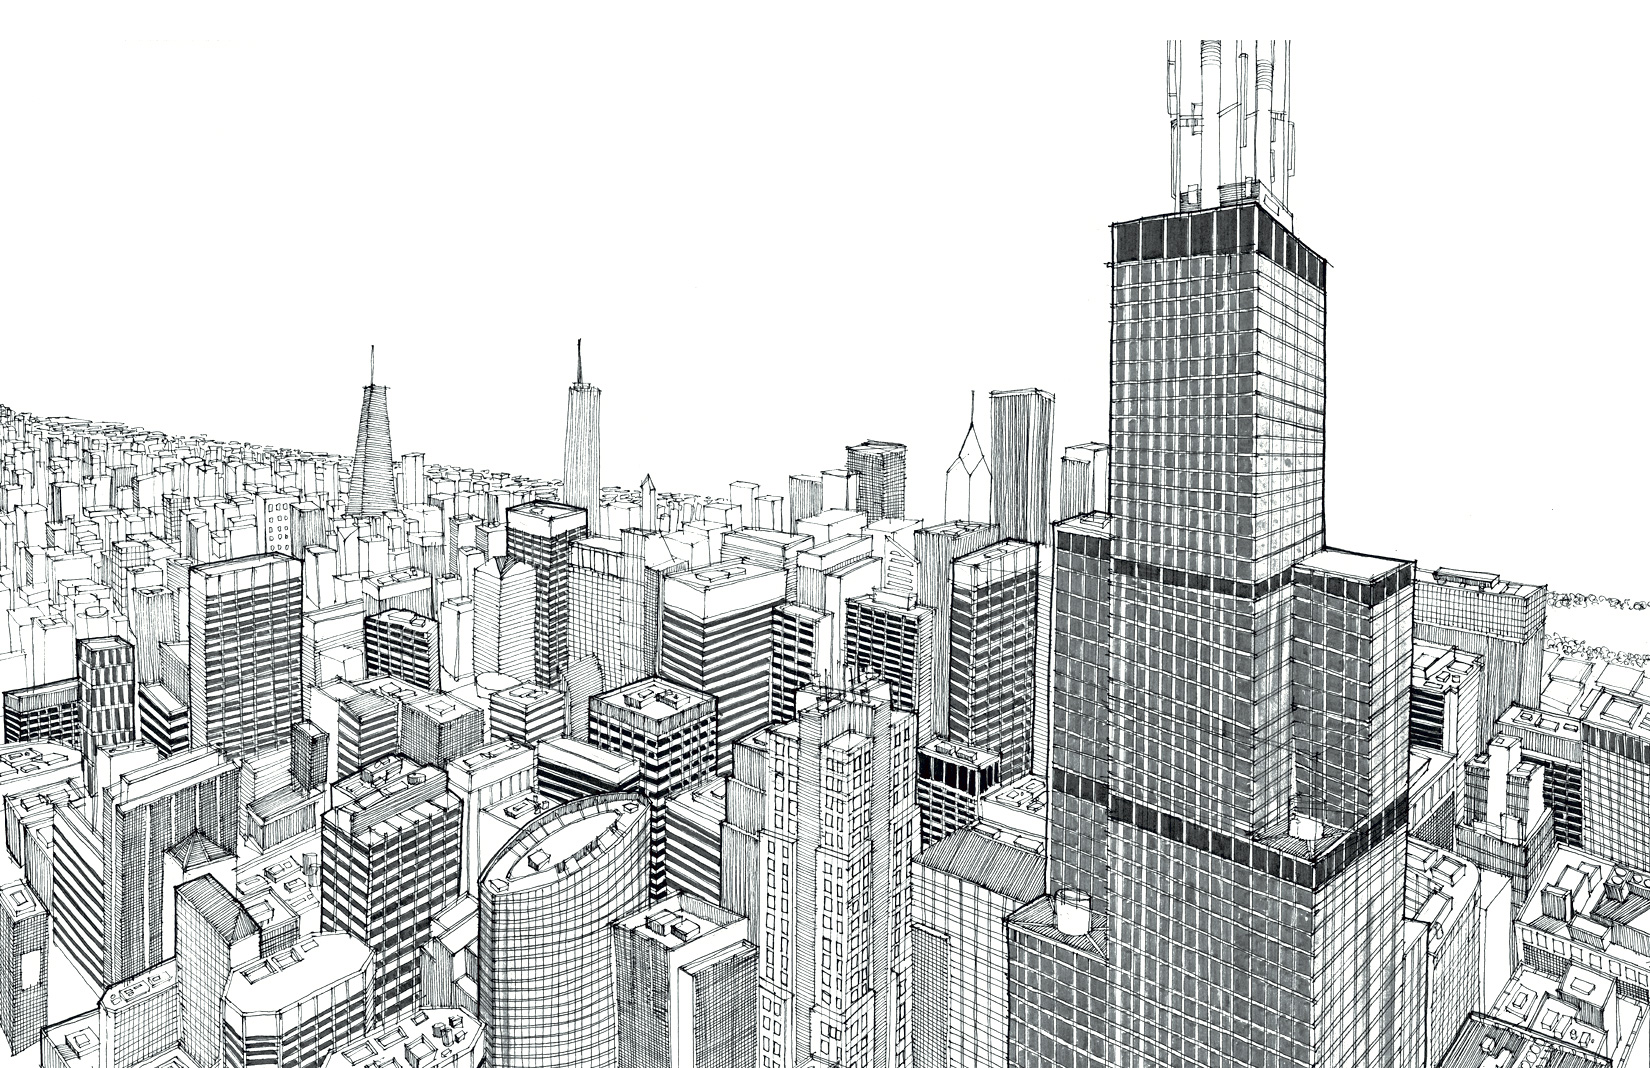 Chicago's cityscape by Sam Picardal (c)